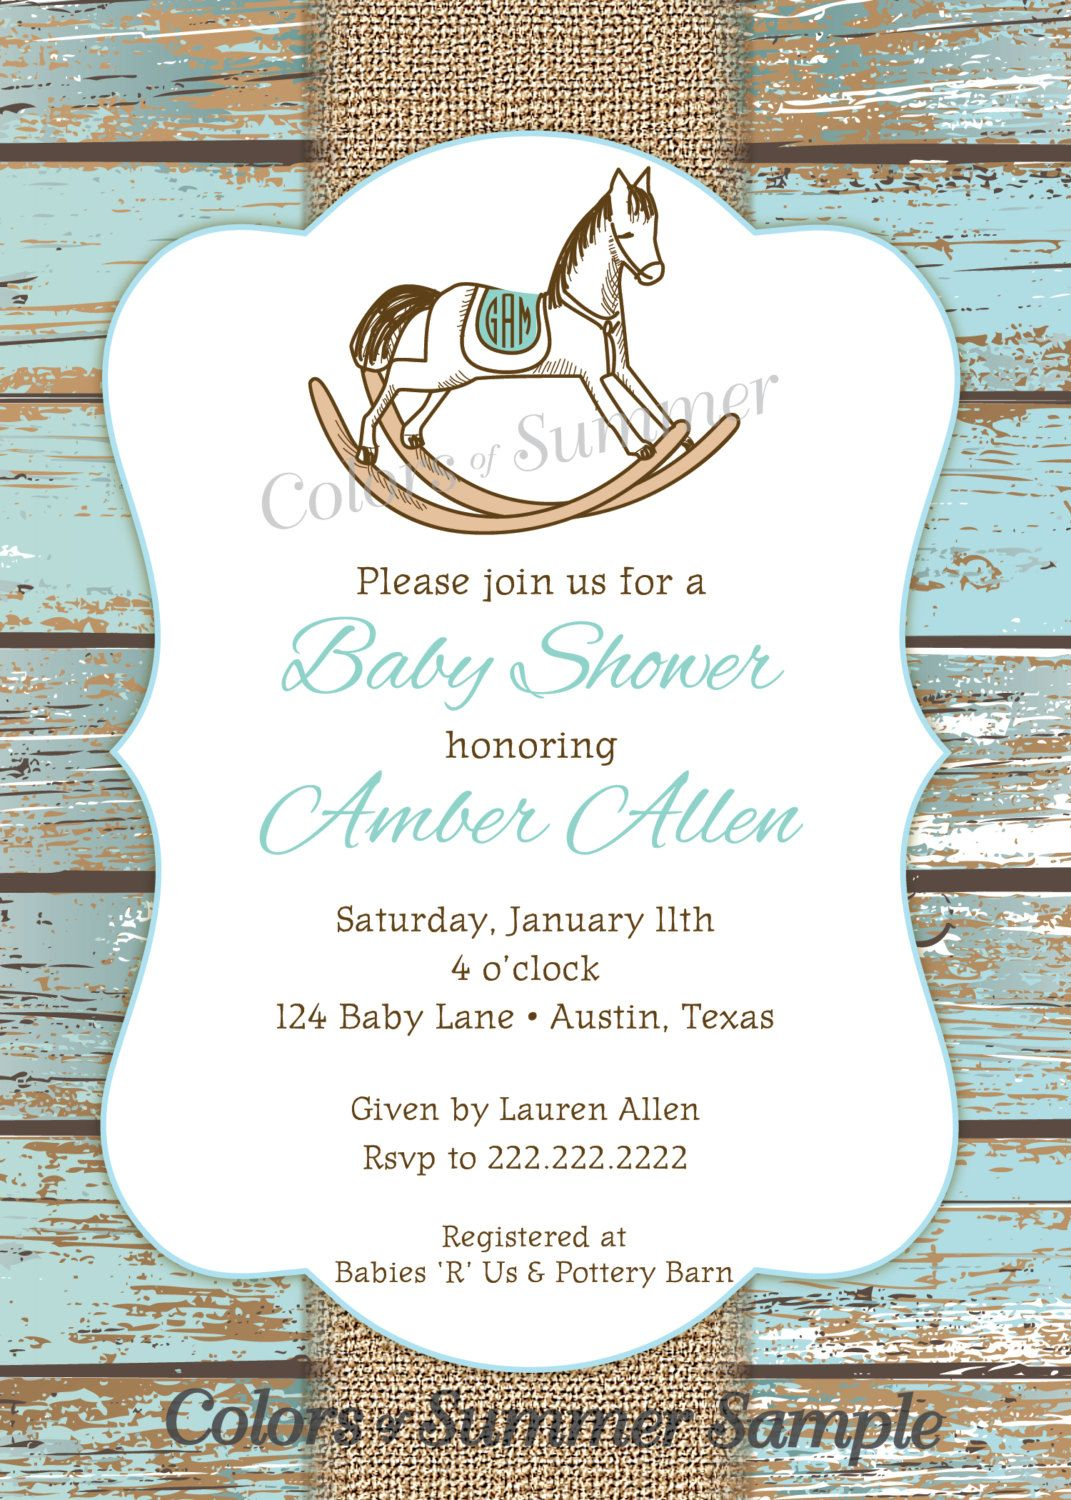 Rocking Horse Baby Shower Invitation, Rustic Invite, White Wash Wood ...